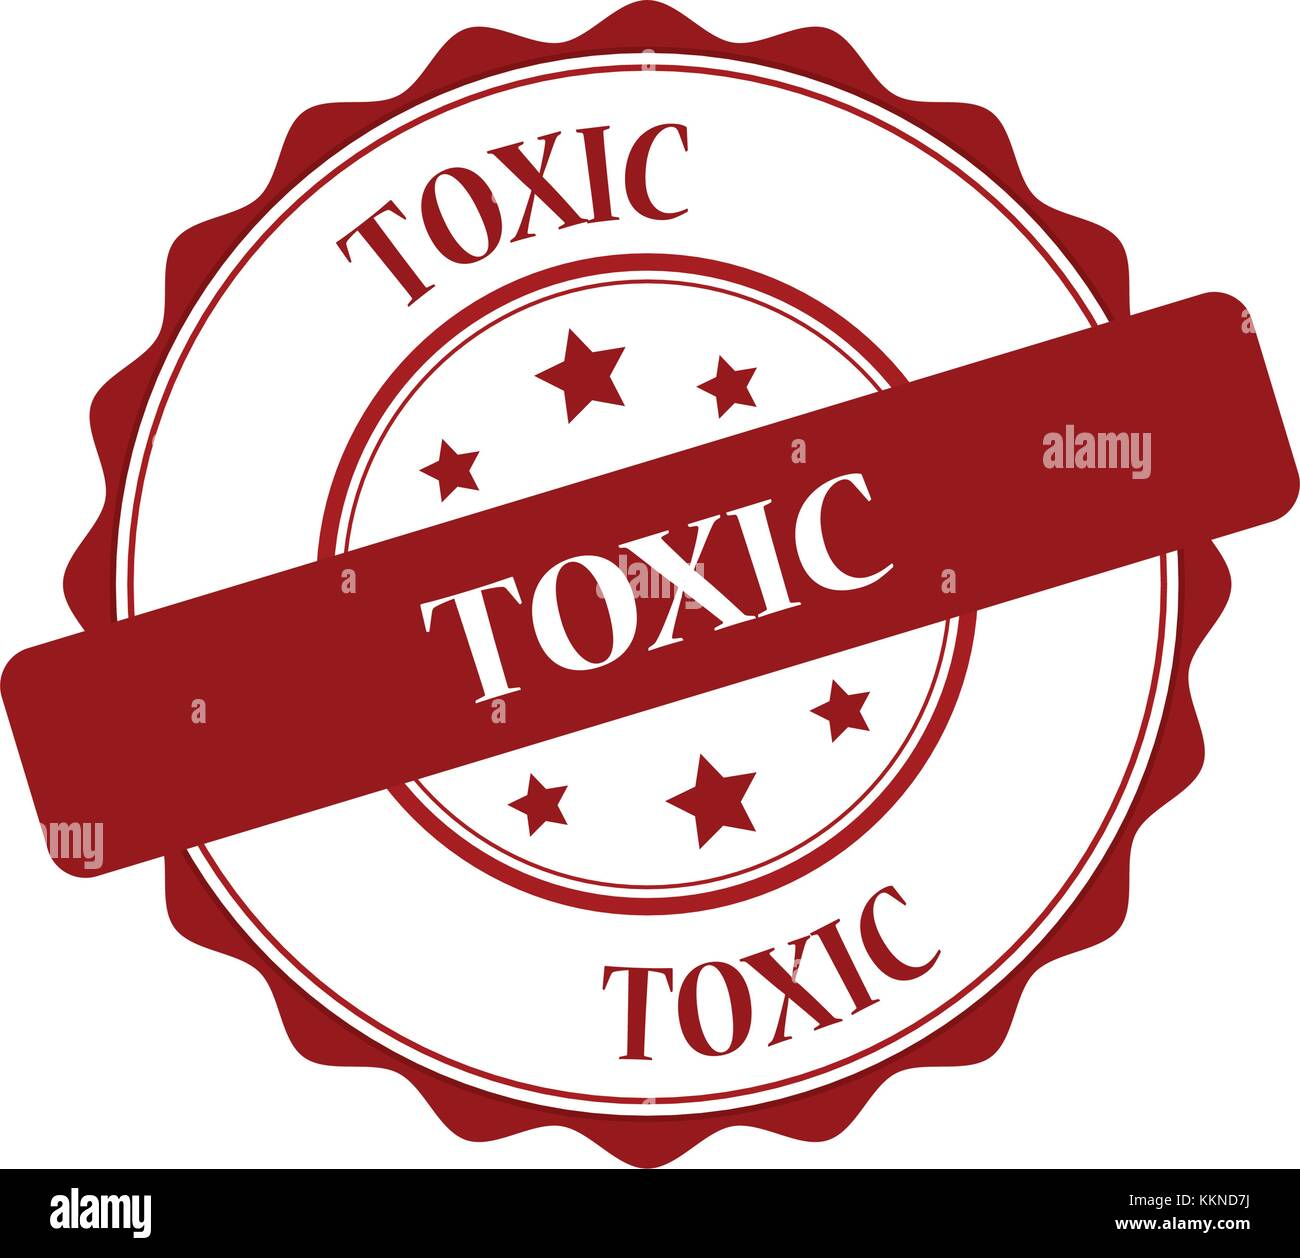 Toxic stock vector images alamy toxic stamp illustration stock vector biocorpaavc Images